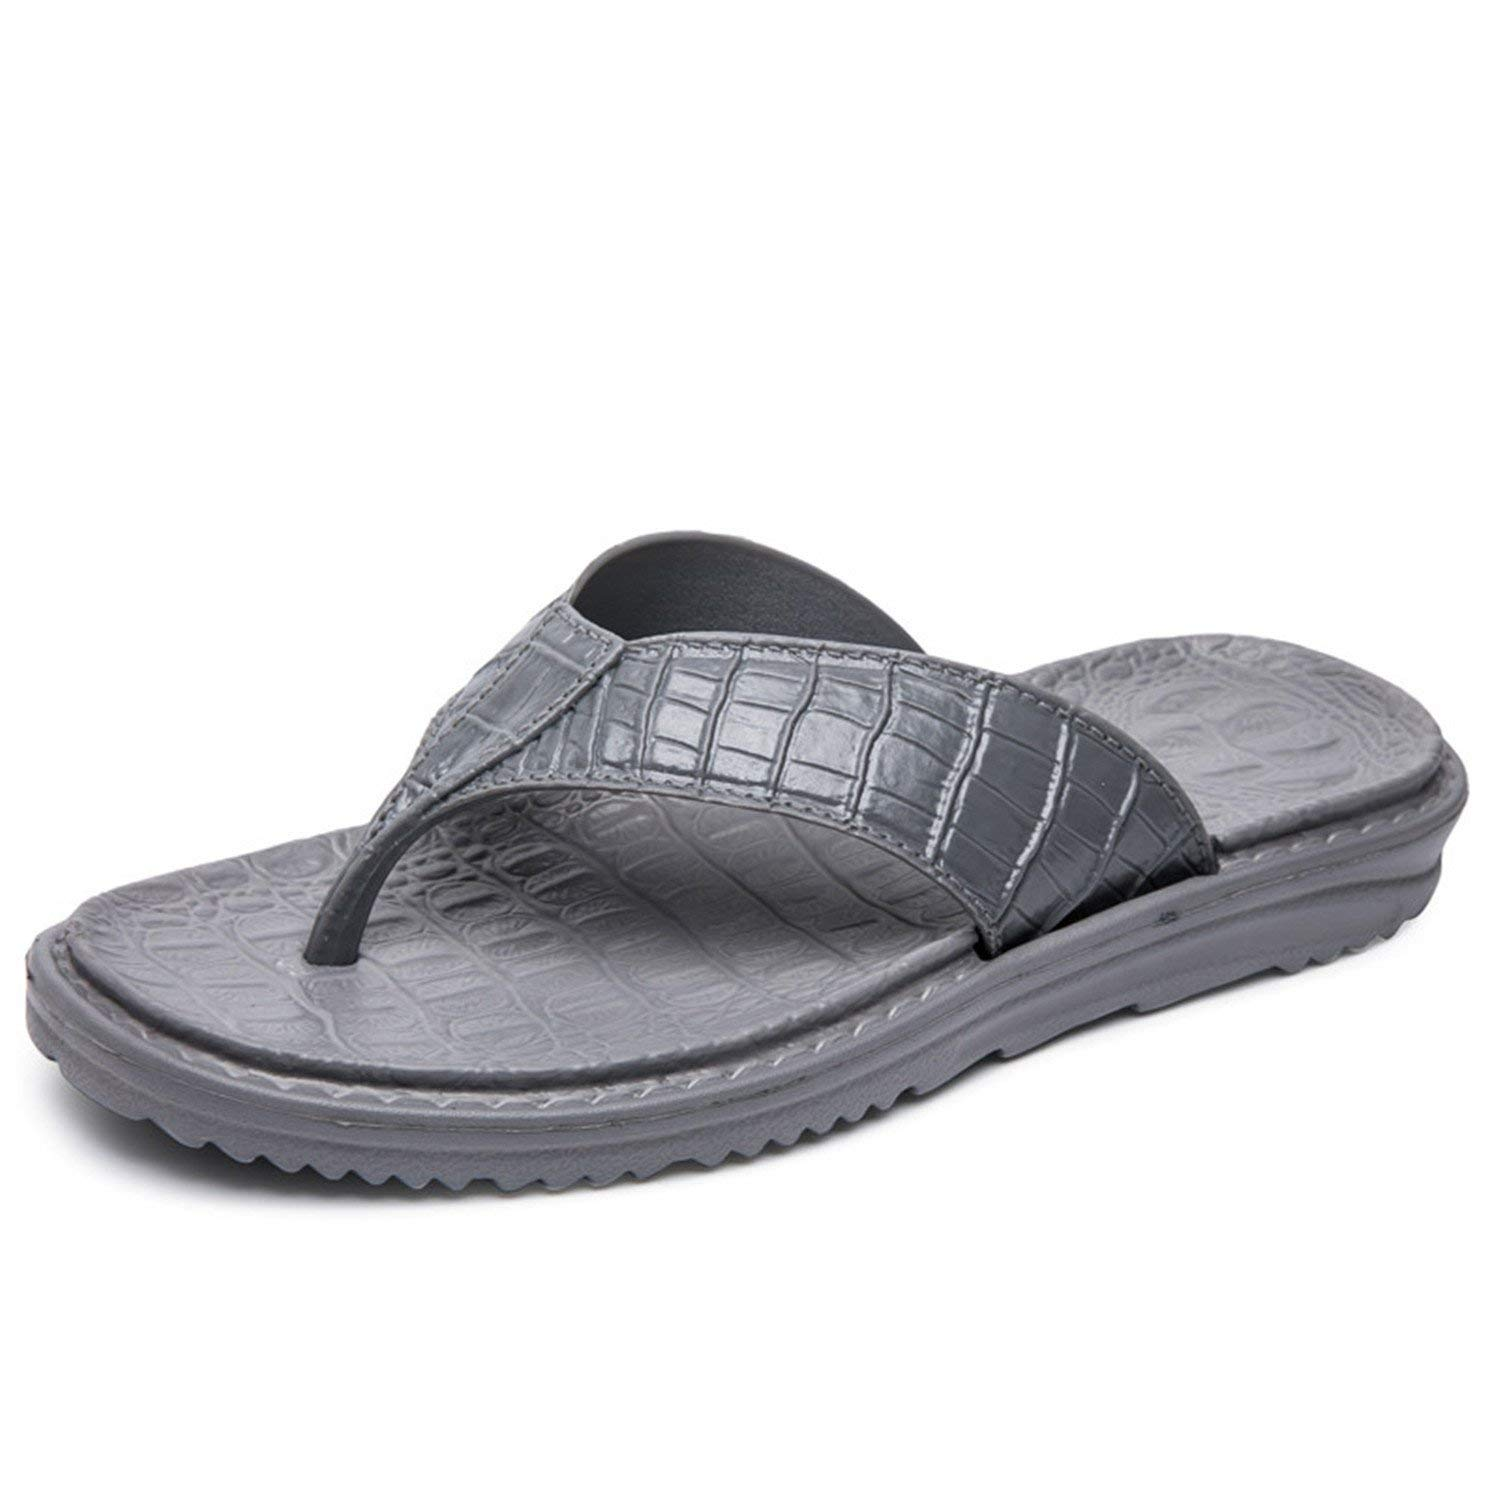 6b46fb772124e1 Get Quotations · Marvin Cook Soft Flip Flops Men Sandals Beach Shoes Eva  Summer Slippers Massage Shoes